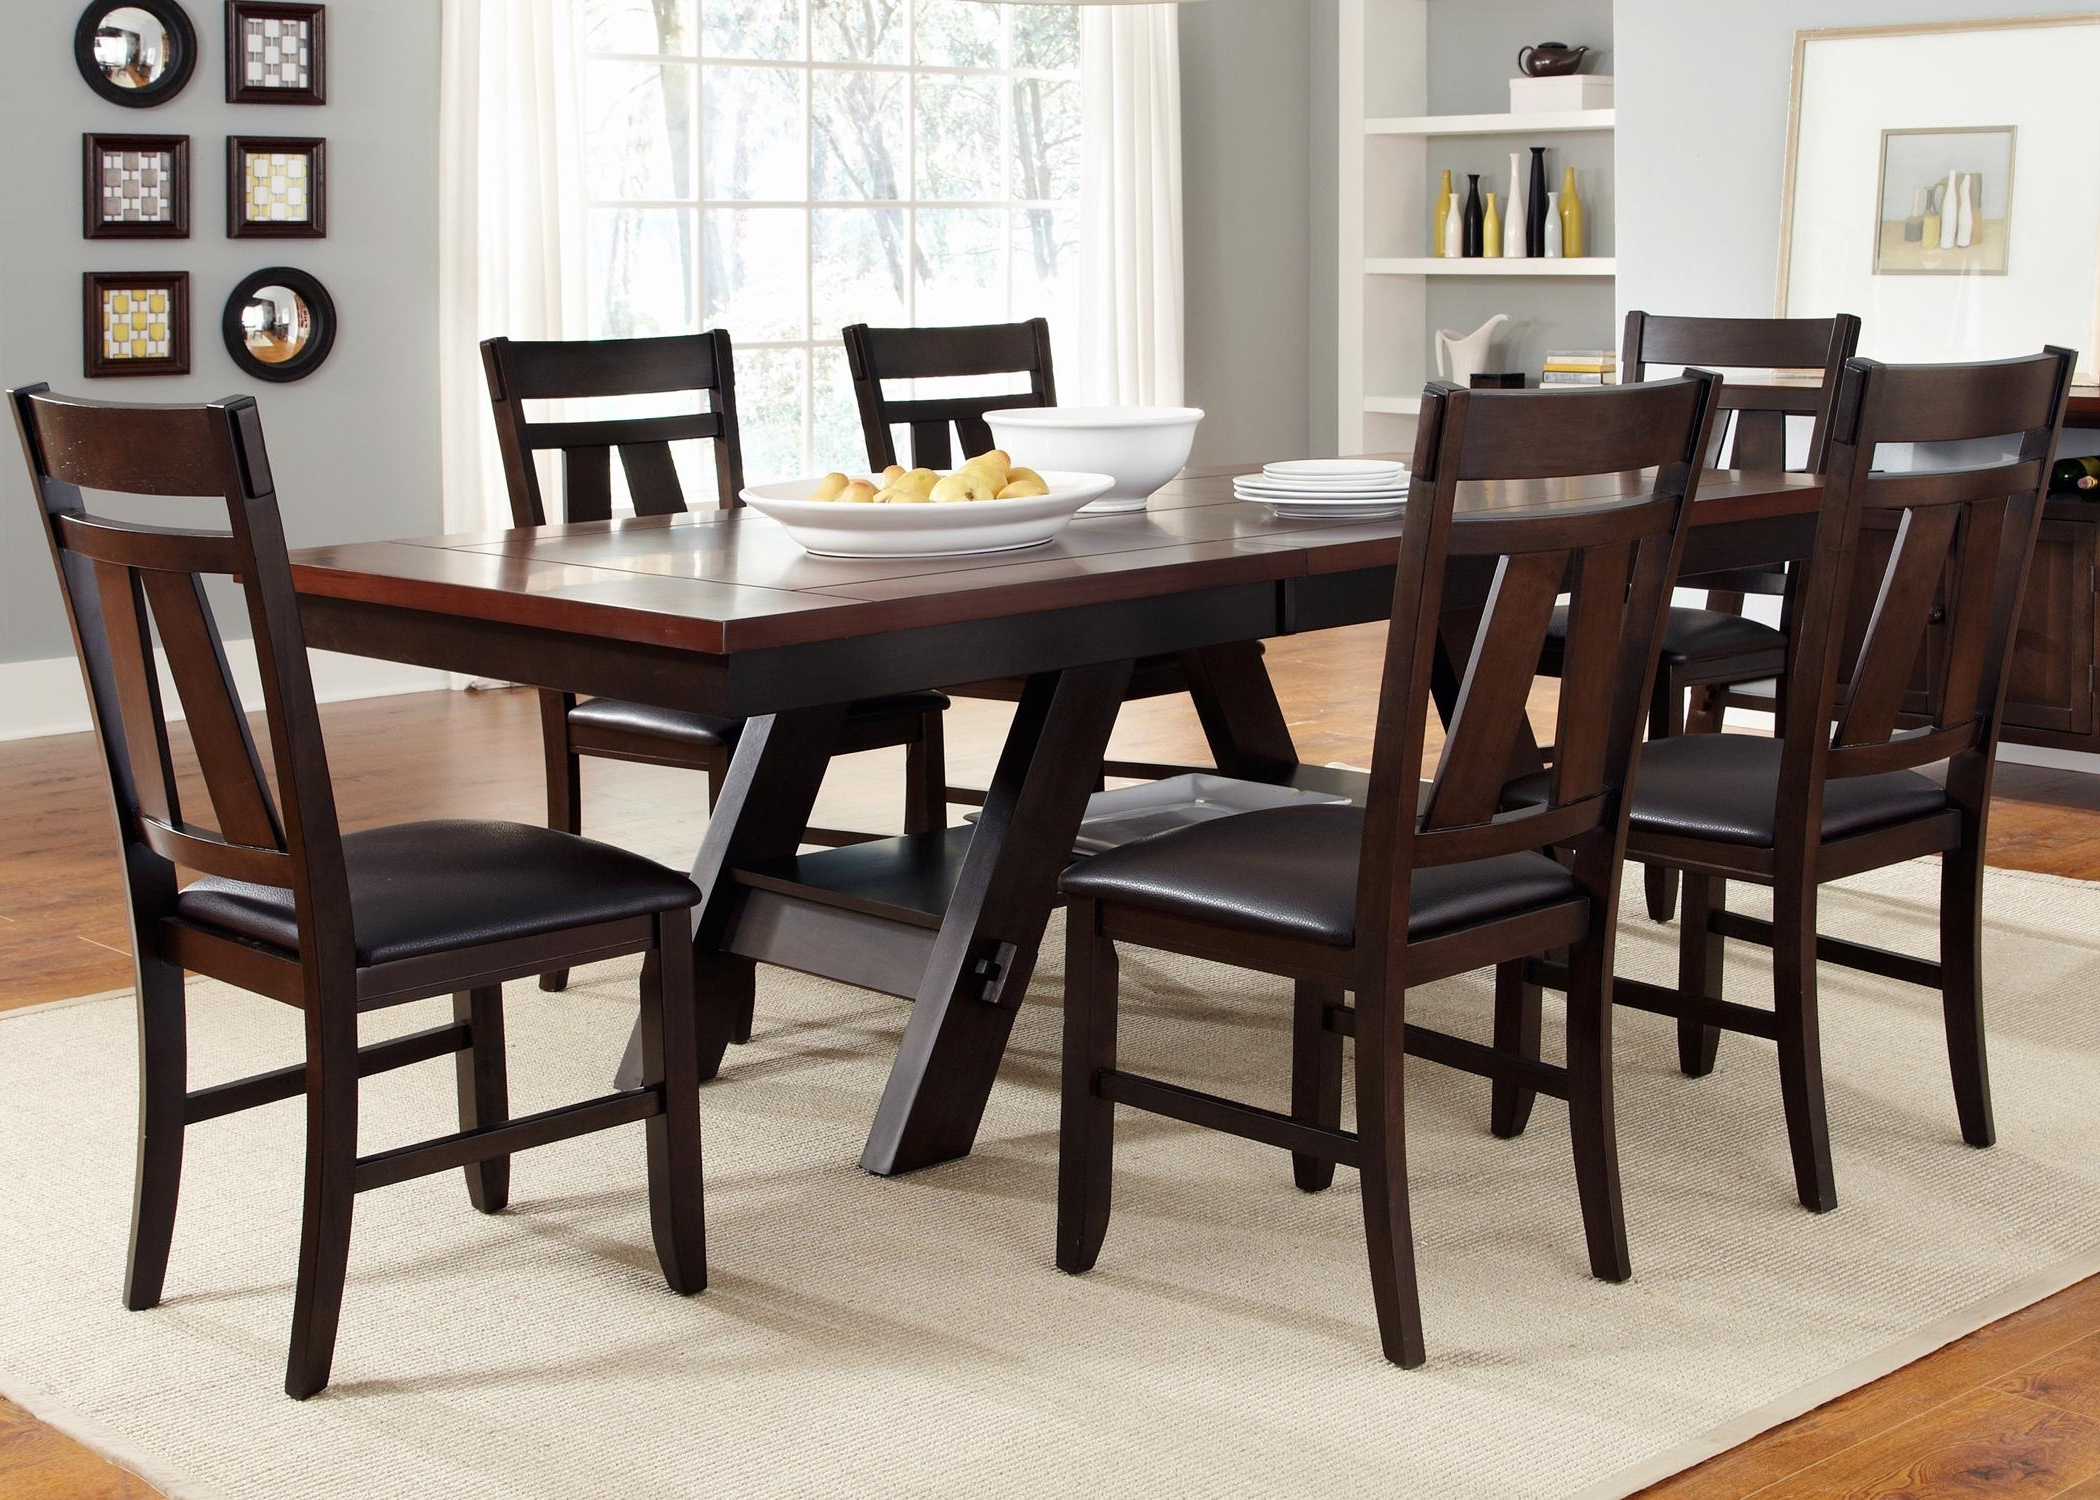 Parquet 7 Piece Dining Sets Throughout Favorite 7 Piece Rectangular Trestle Table And Splat Back Chairs Set (View 13 of 25)